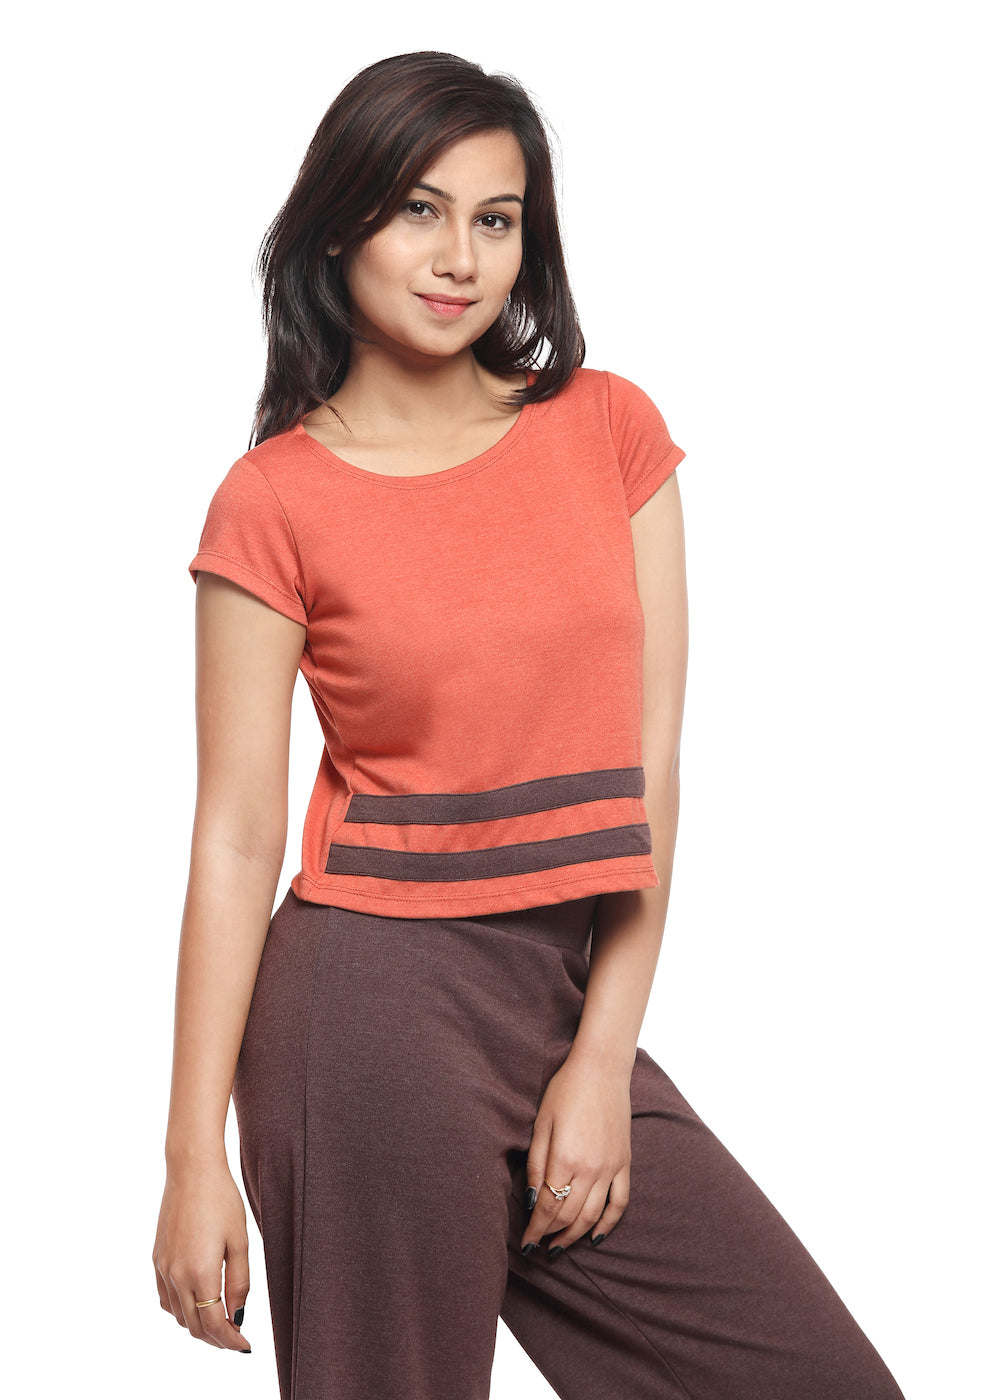 Orange Crop Top with Brown Stripes - GENZEE